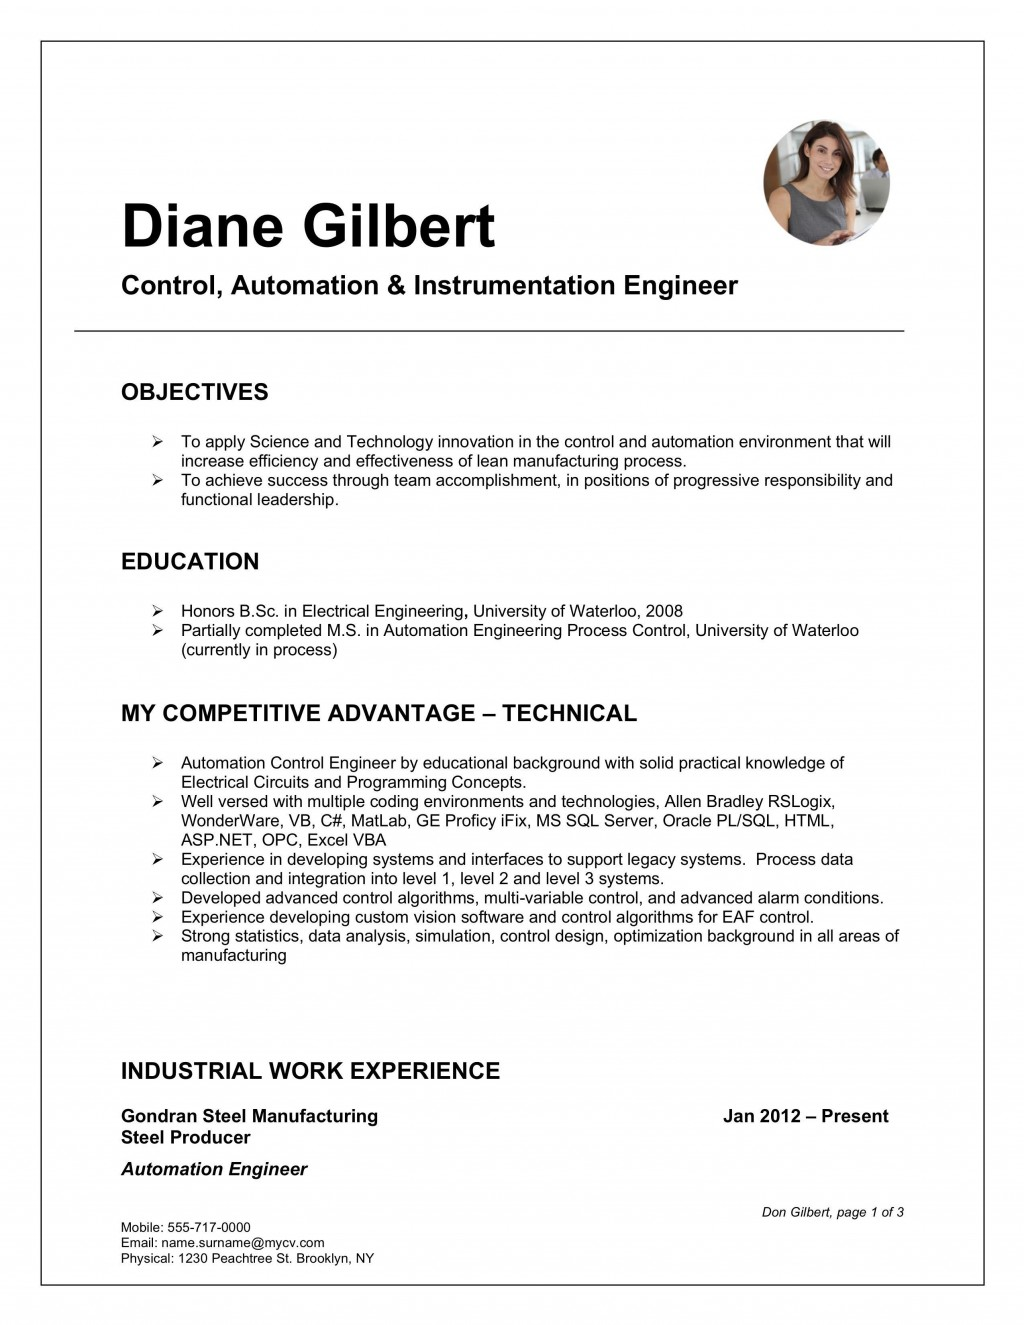 000 Sensational Skill Based Resume Template Microsoft Word High Resolution Large